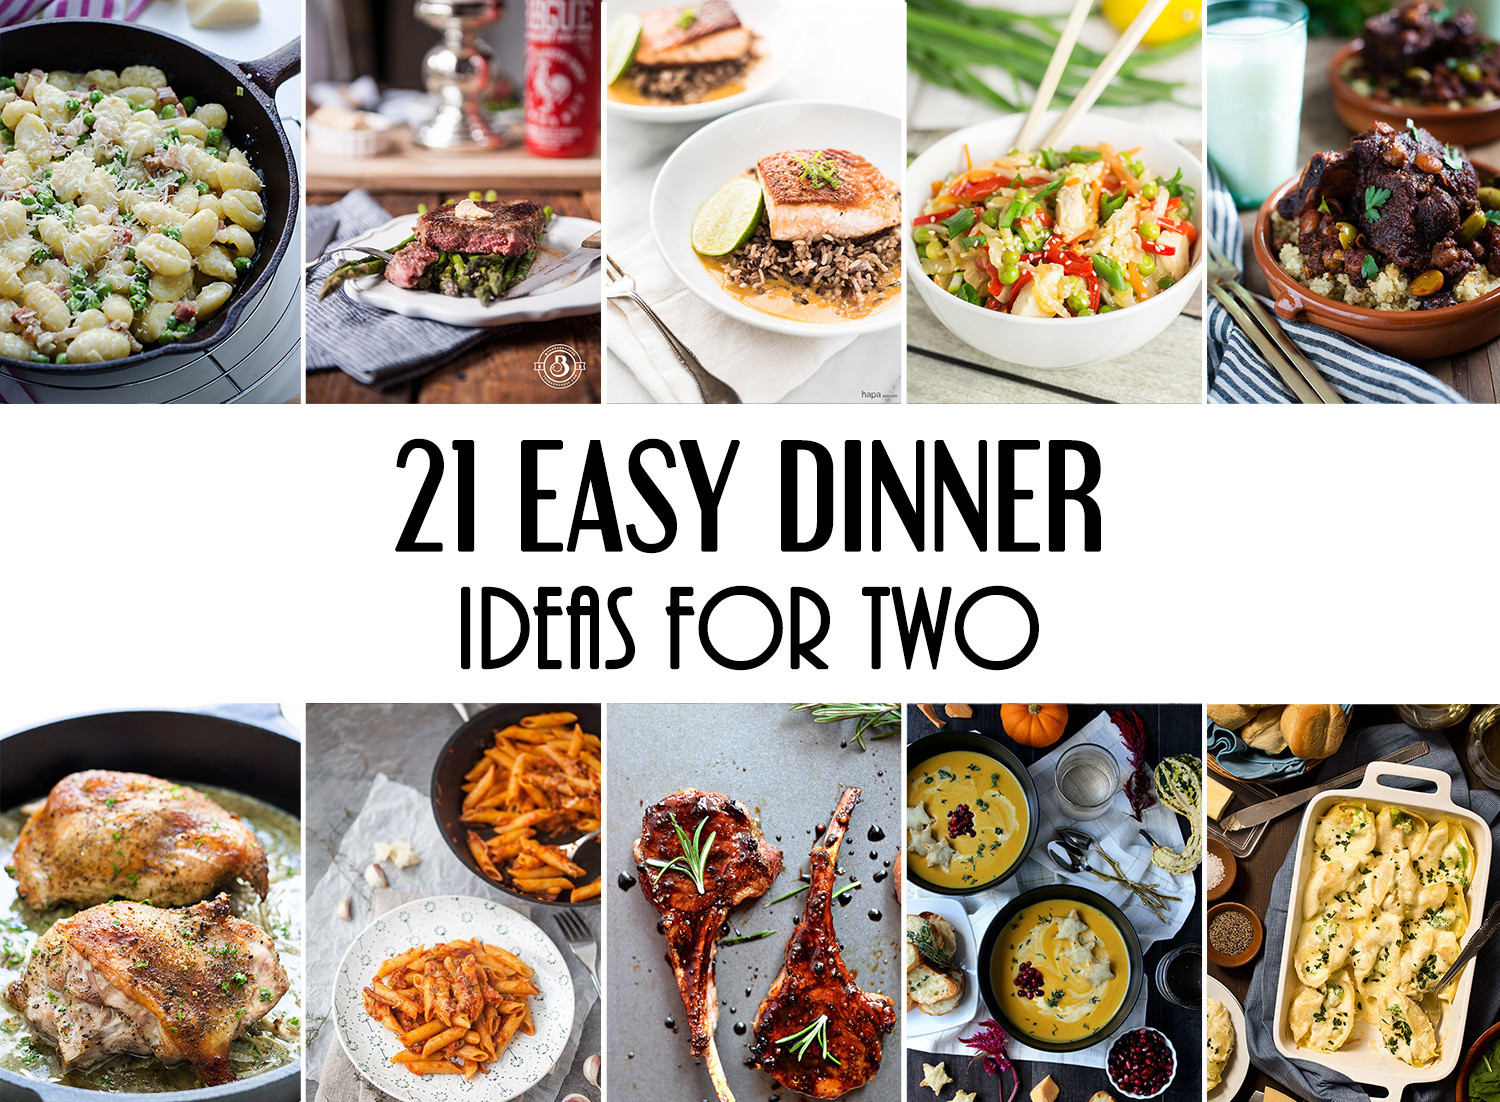 Quick Dinner Ideas For Two  21 Easy Dinner Ideas For Two That Will Impress Your Loved e